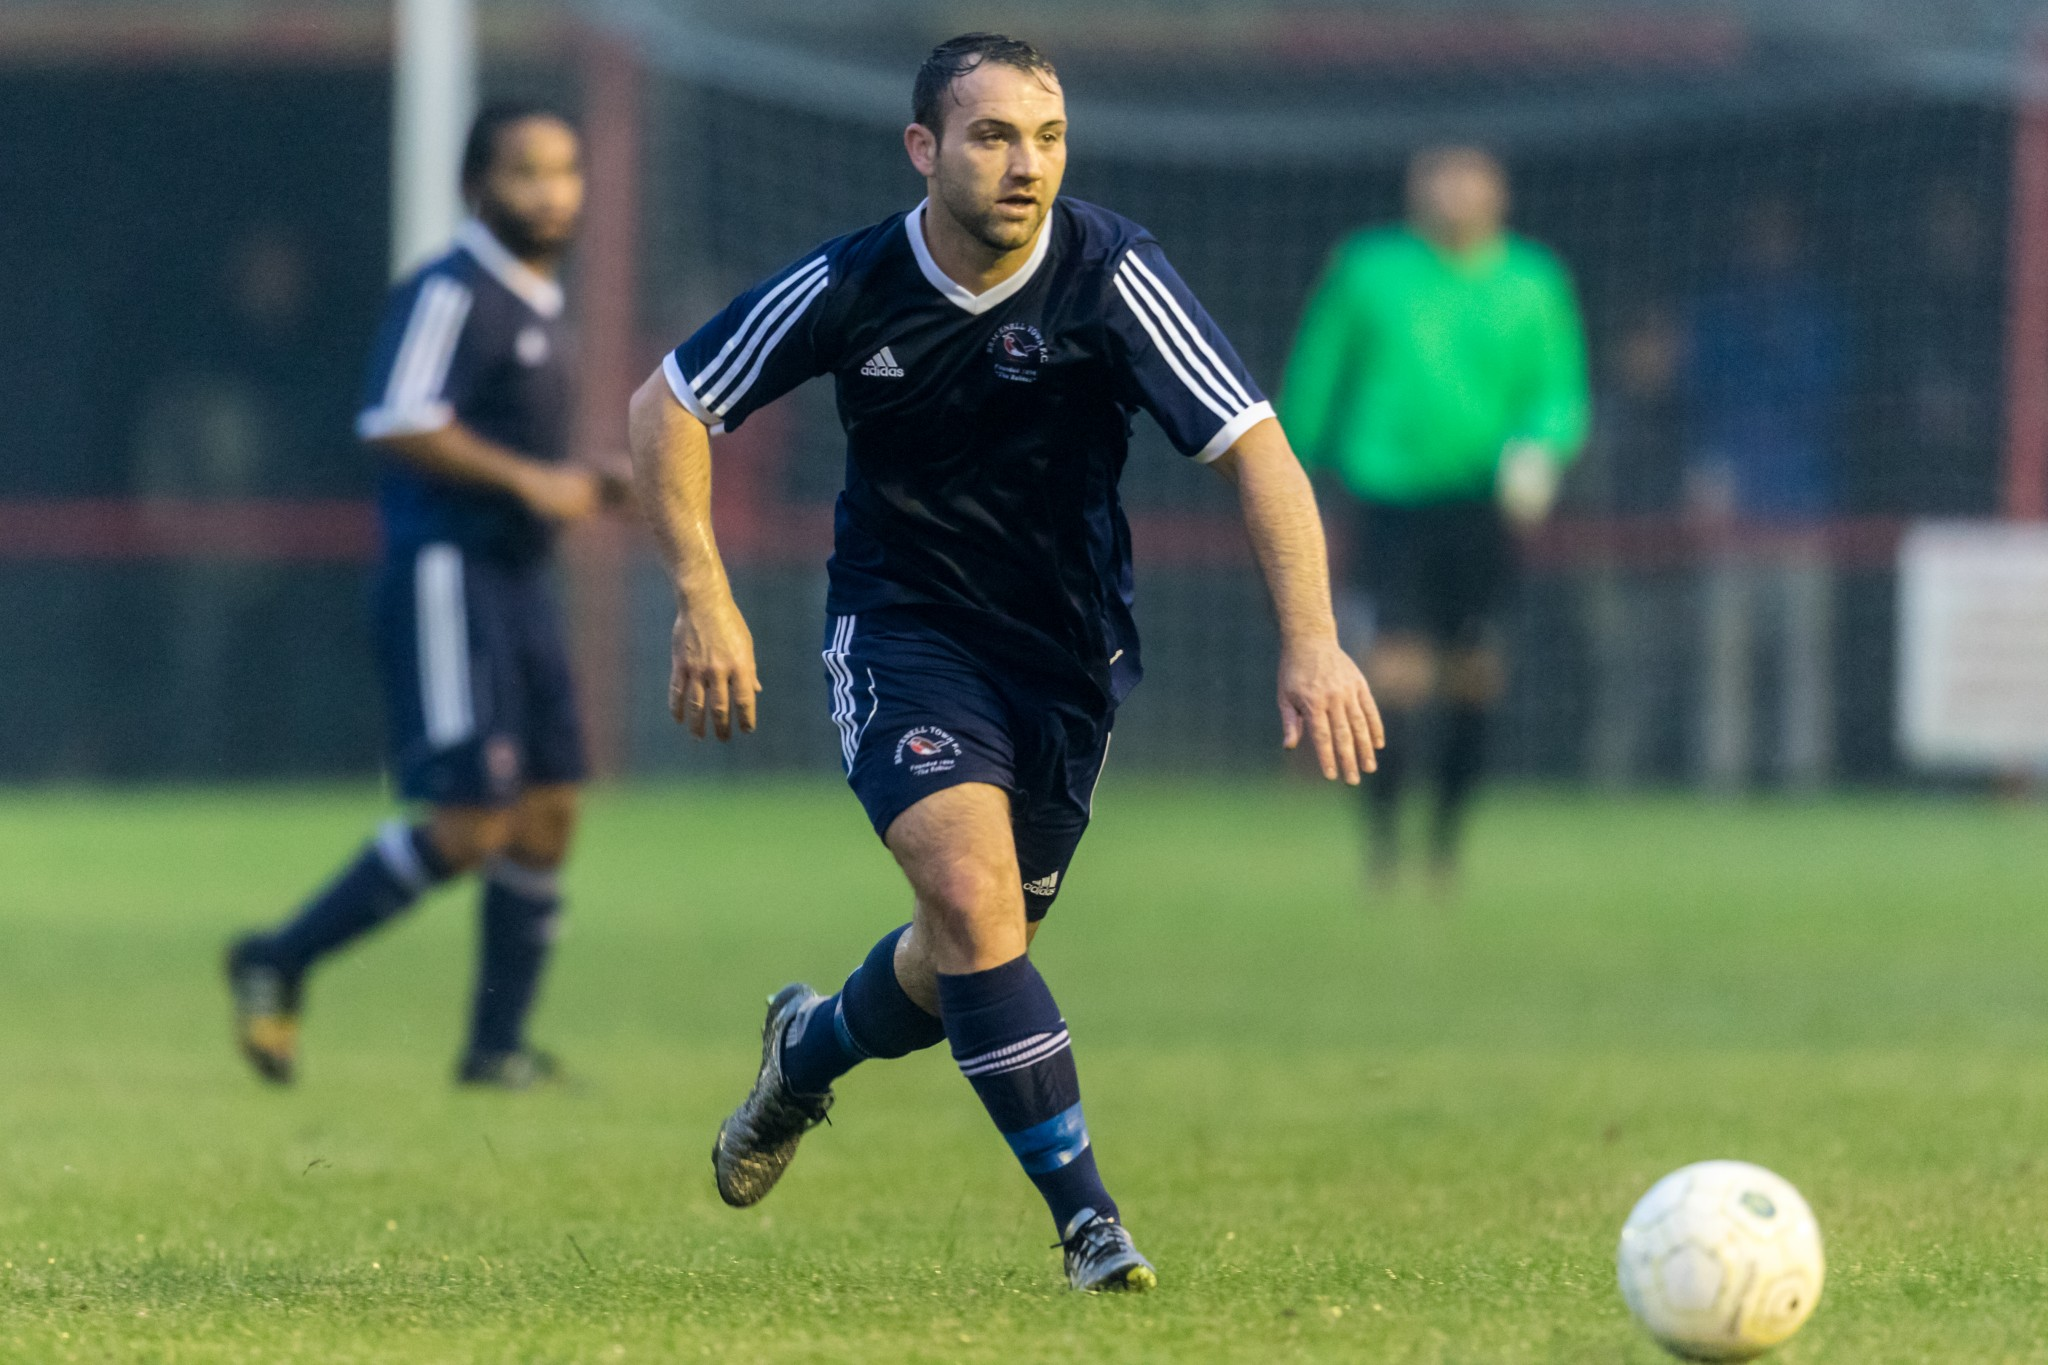 What we learned from the opening week of the Hellenic League season